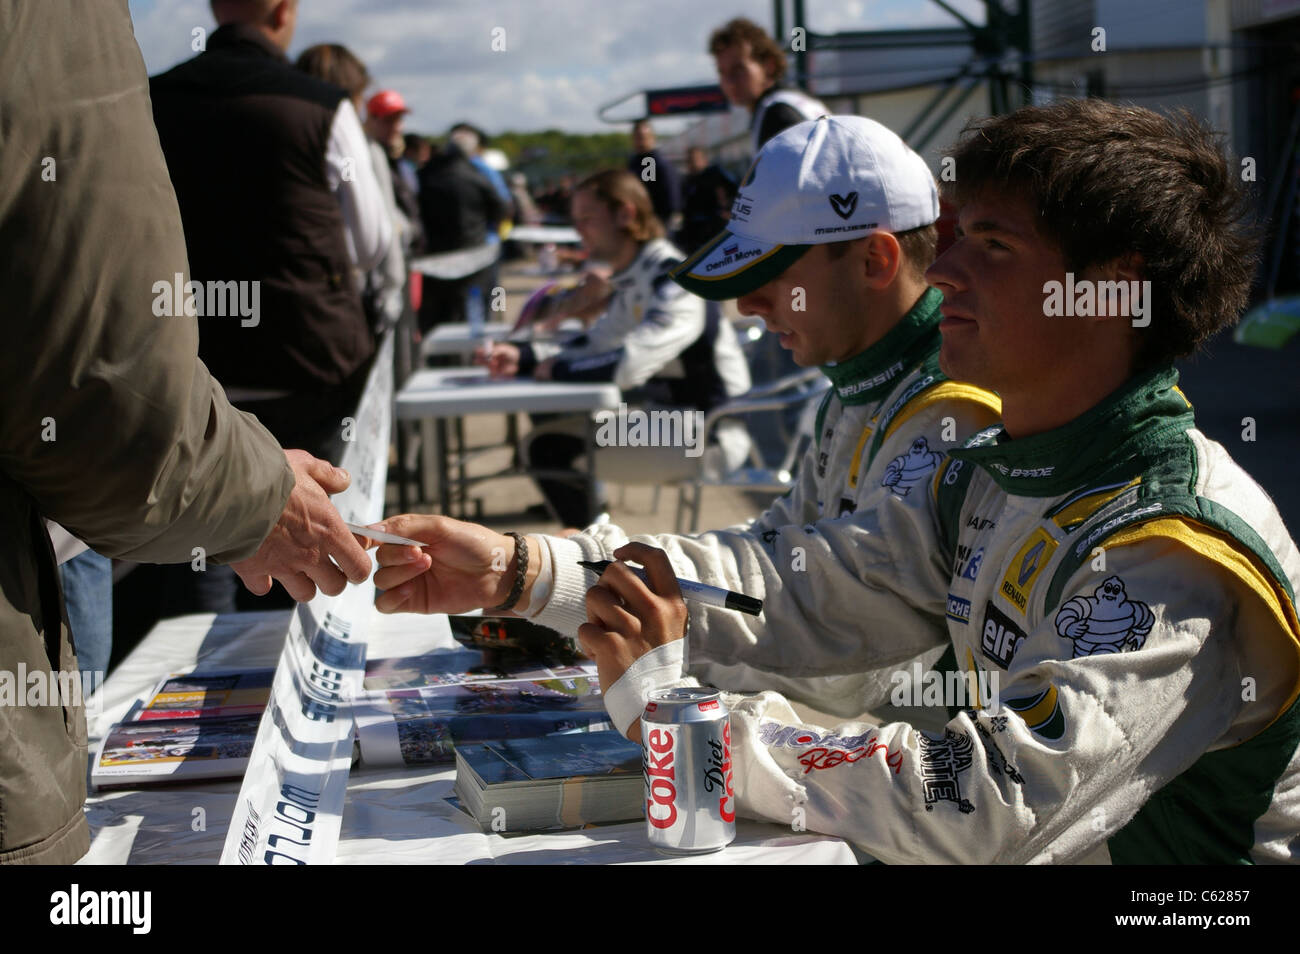 Drivers of Junior Team Lotus, Nelson Panciatici and Daniil Move give autographs. - Stock Image